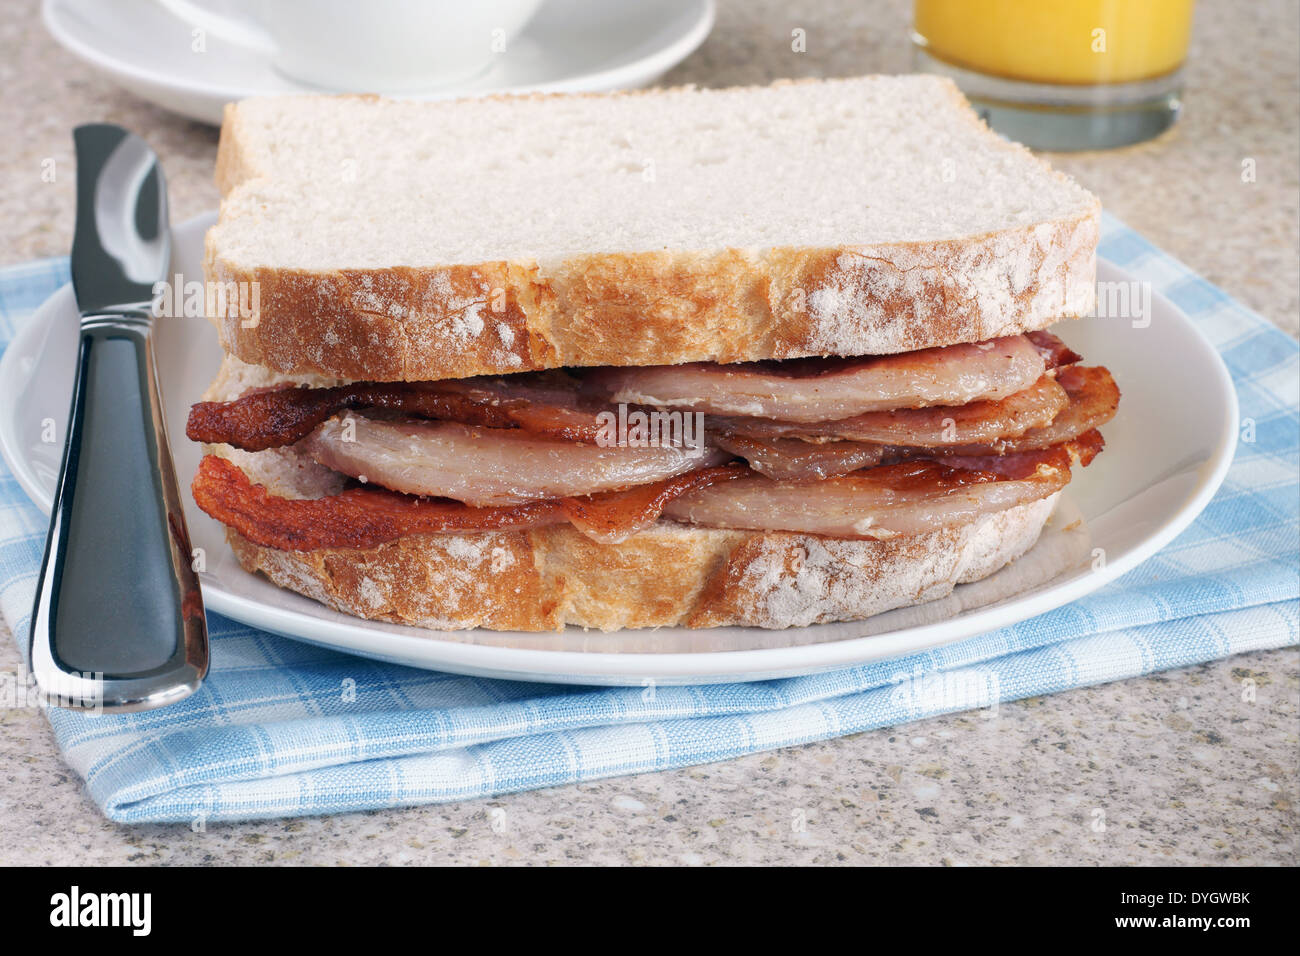 Bacon Sandwich or bacon butty selective focus on the bacon - Stock Image